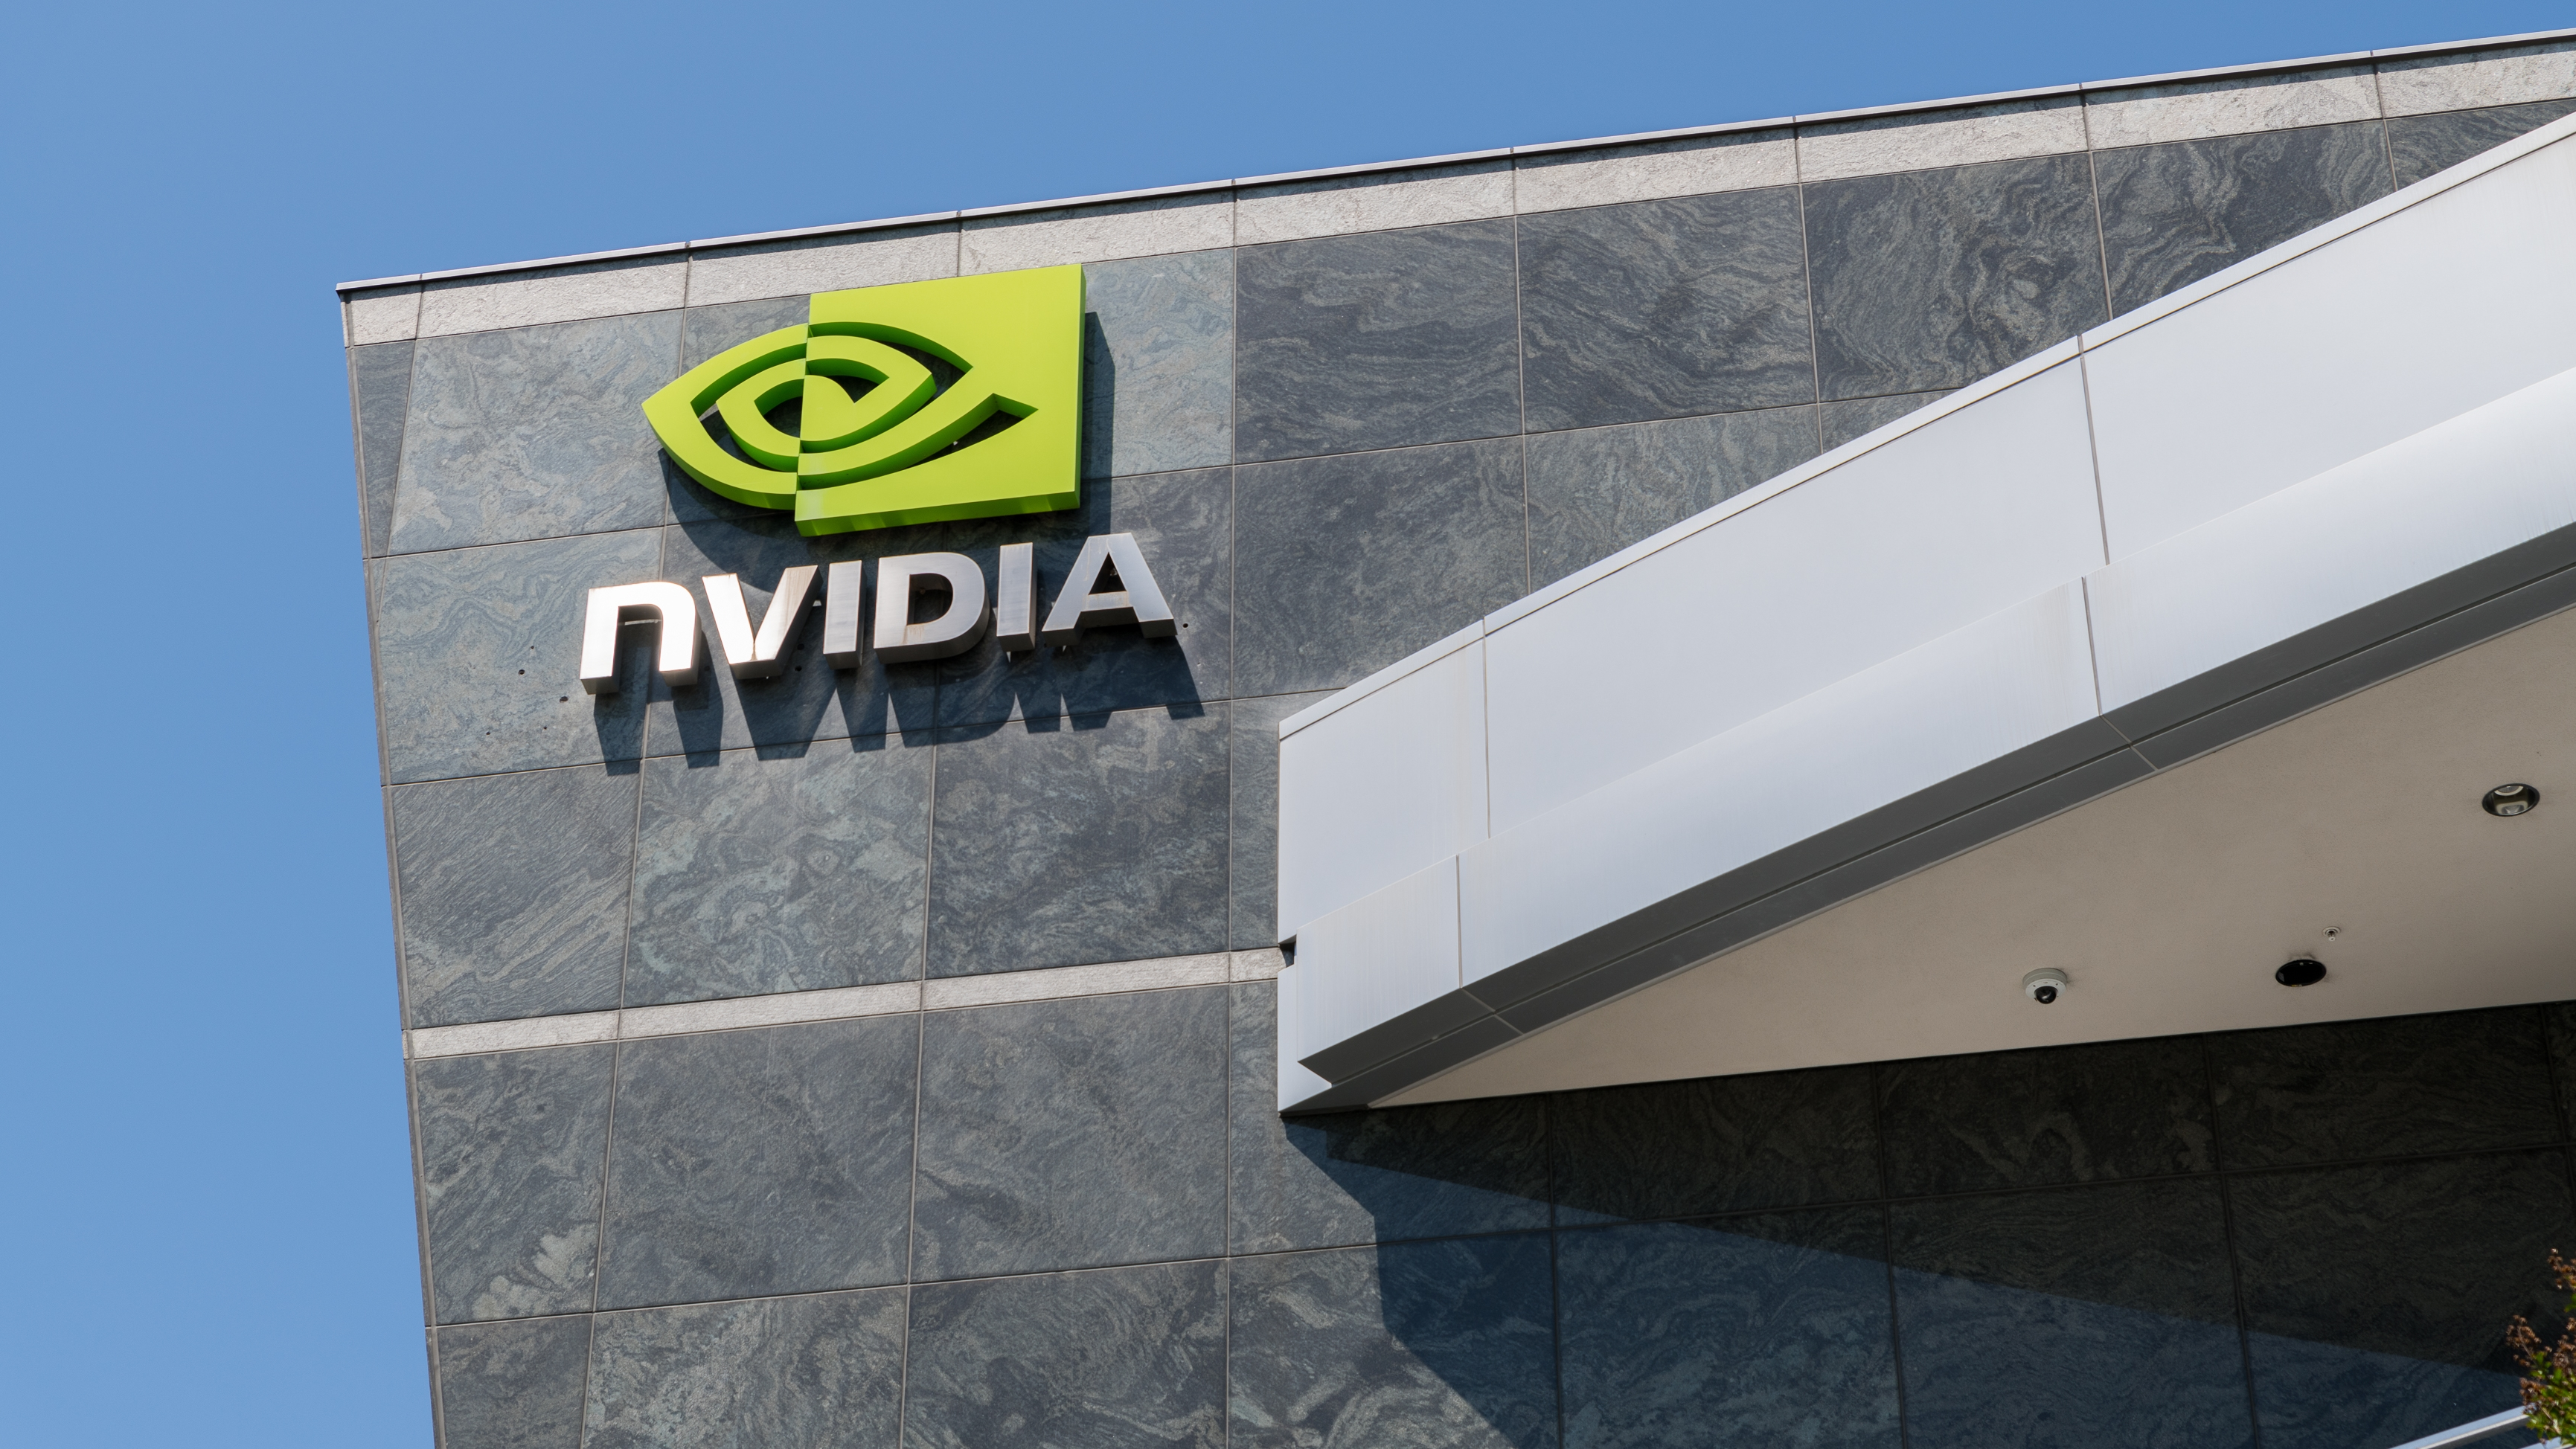 Nvidia's new driver gives a major boost to games for free thanks to VRSS